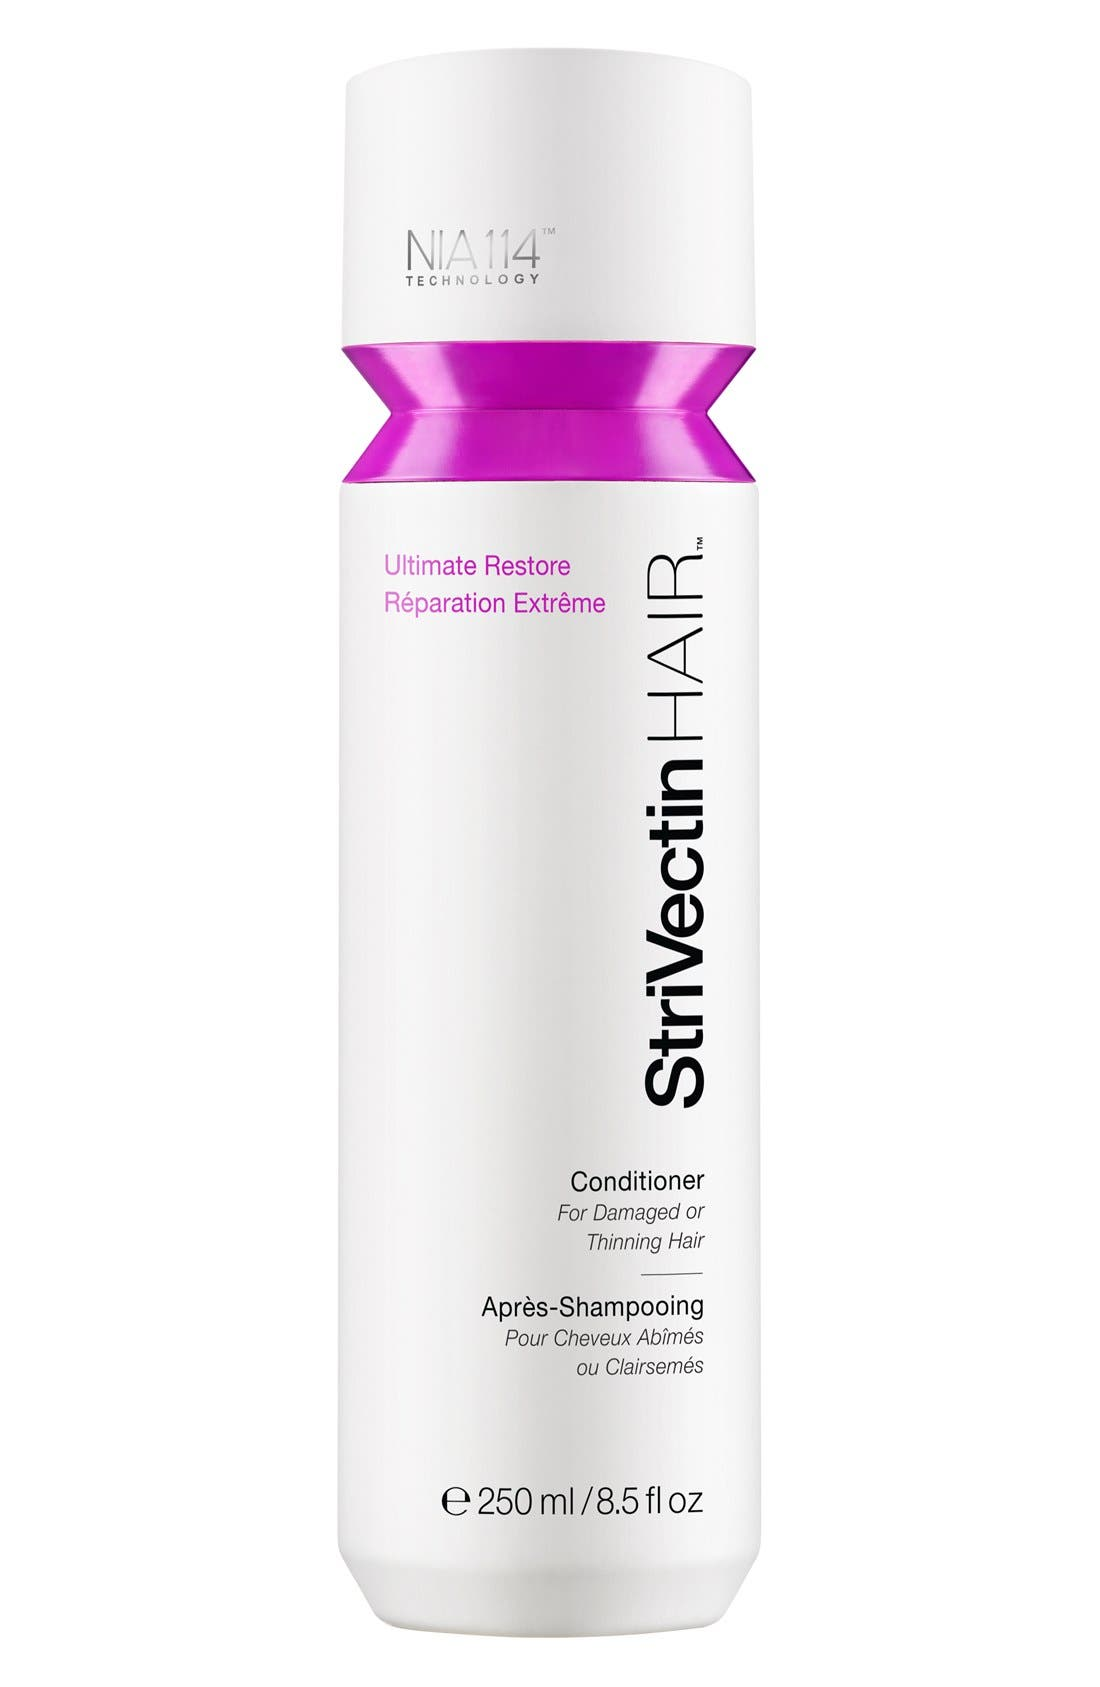 StriVectinHAIR<sup>™</sup> 'Ultimate Restore' Conditioner for Damaged or Thinning Hair,                         Main,                         color, 000